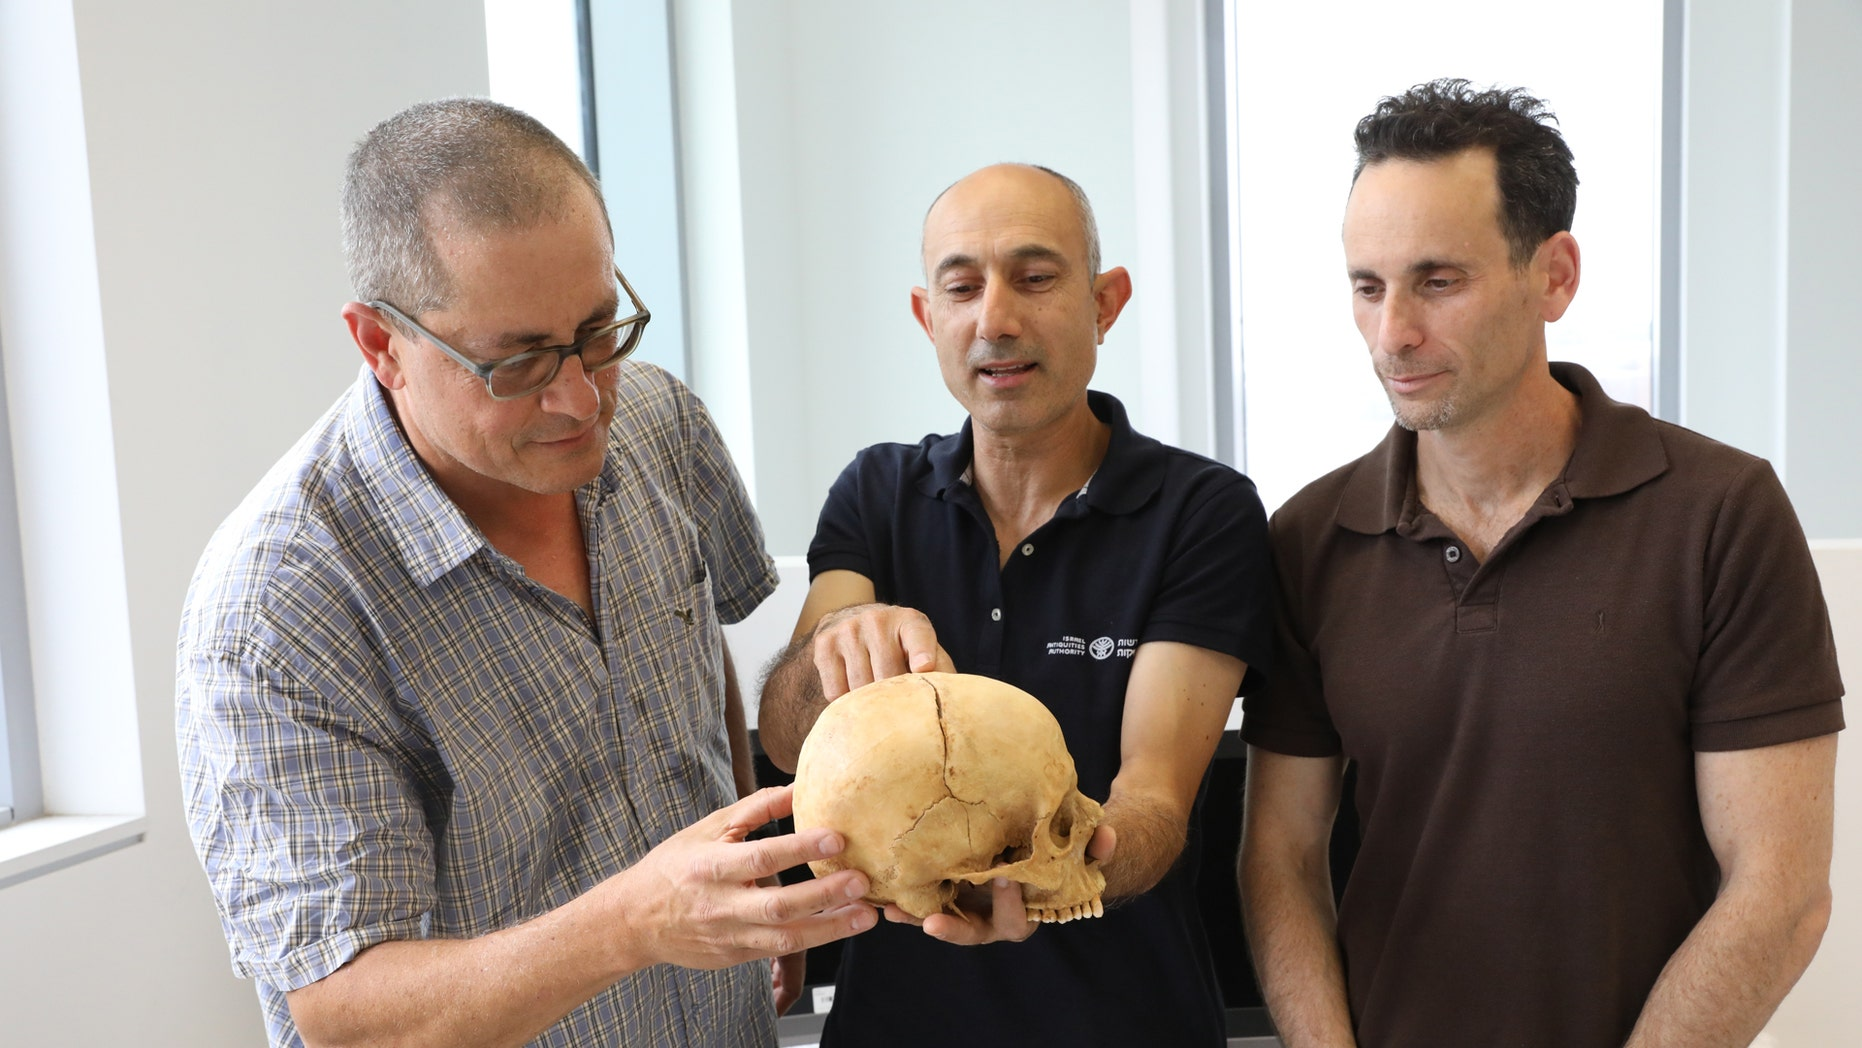 Left to right: Prof. Boaz Zissu of Bar-Ilan University, Dr. Yossi Nagar of the Israel Antiquities Authority and Dr. Haim Cohen of the National Center for Forensic Medicine and Tel Aviv University with the skull (Israel Antiquities Authority)